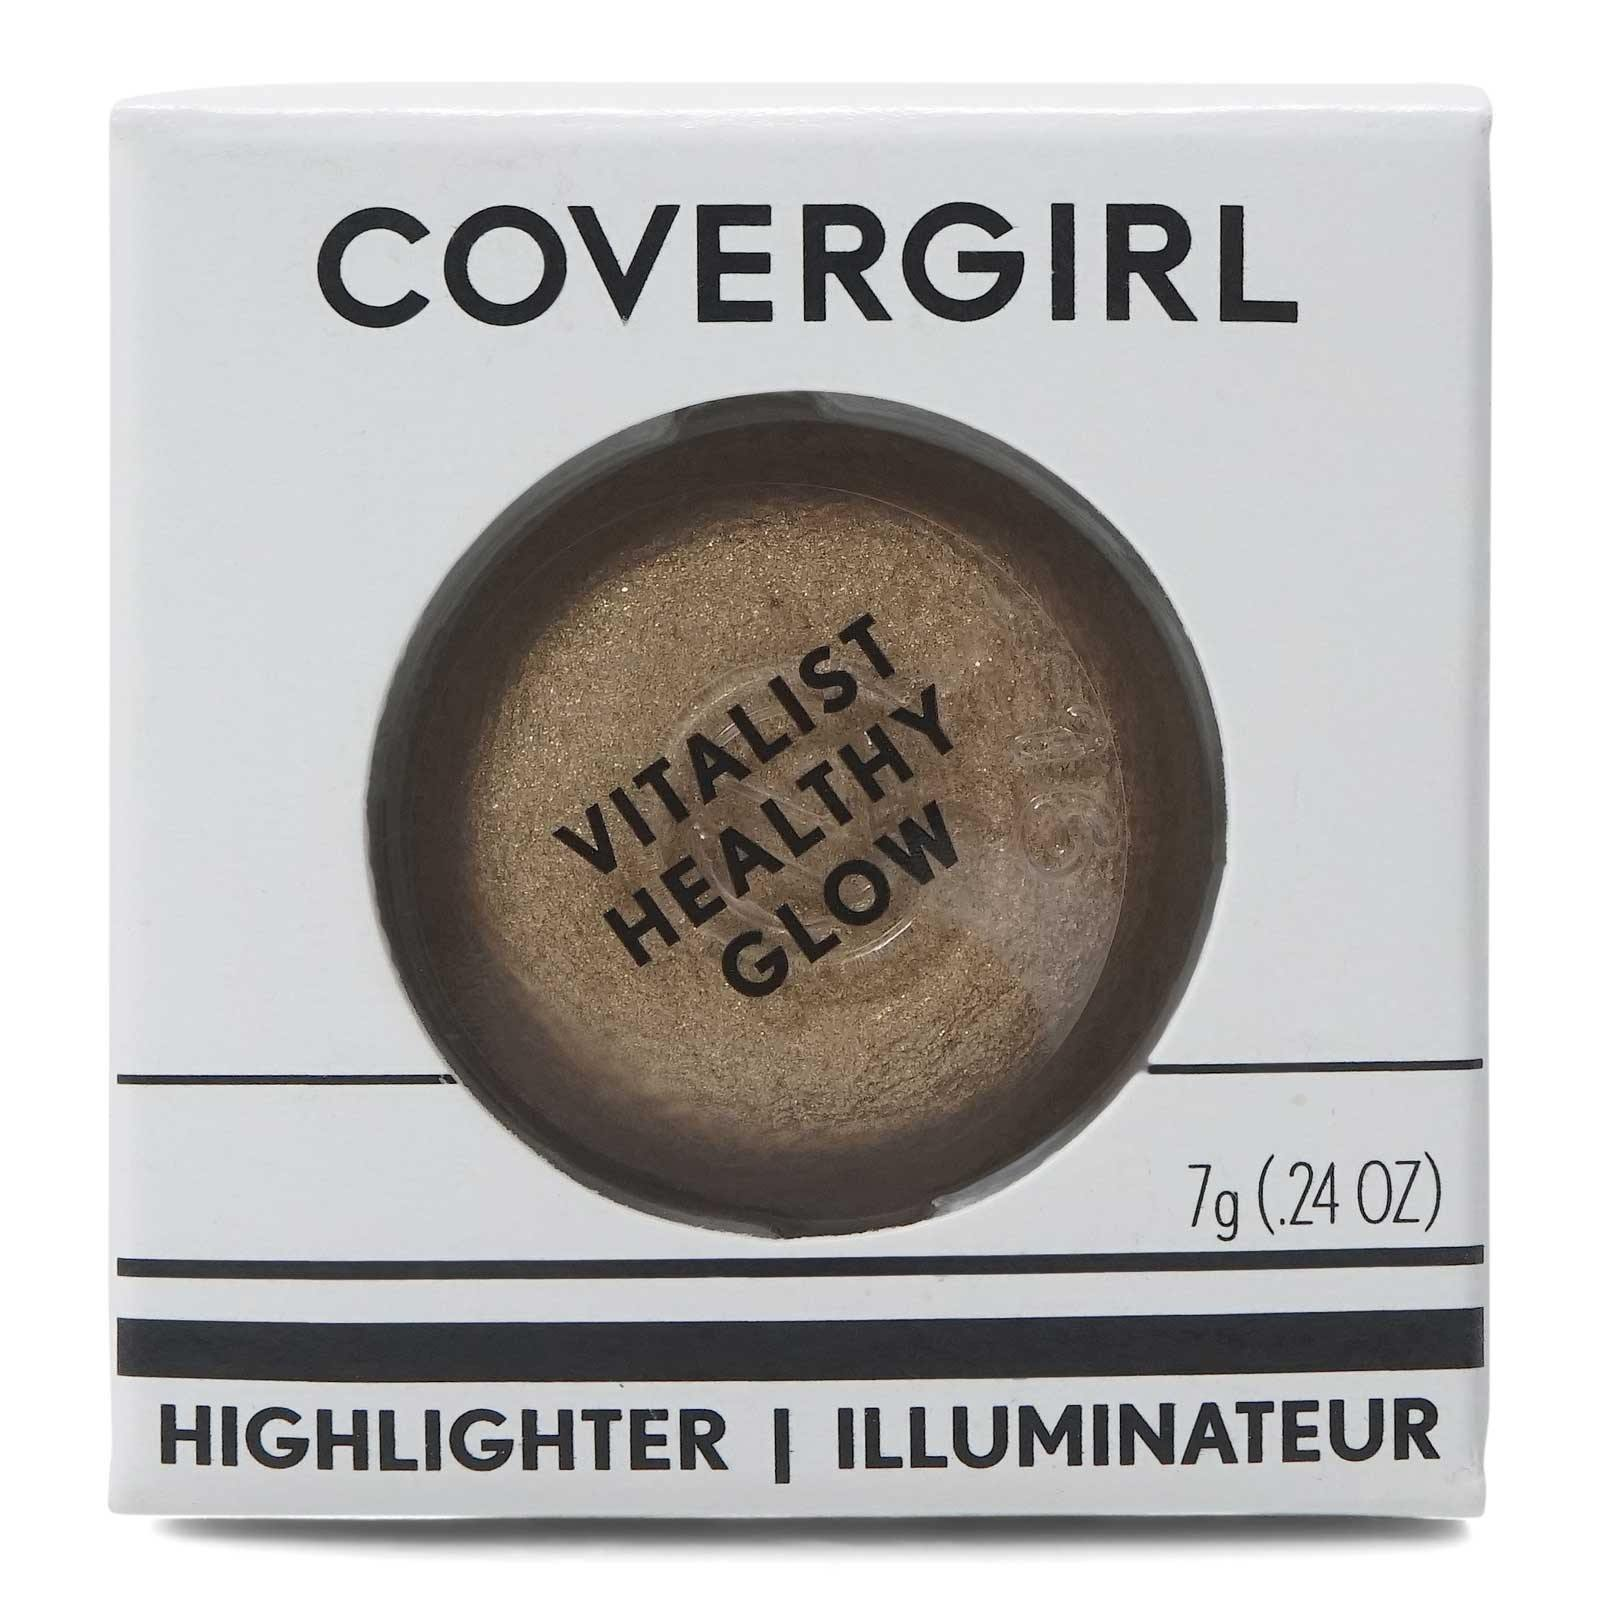 Covergirl VITALIST HIGHLIGHTER - Case of 24 units